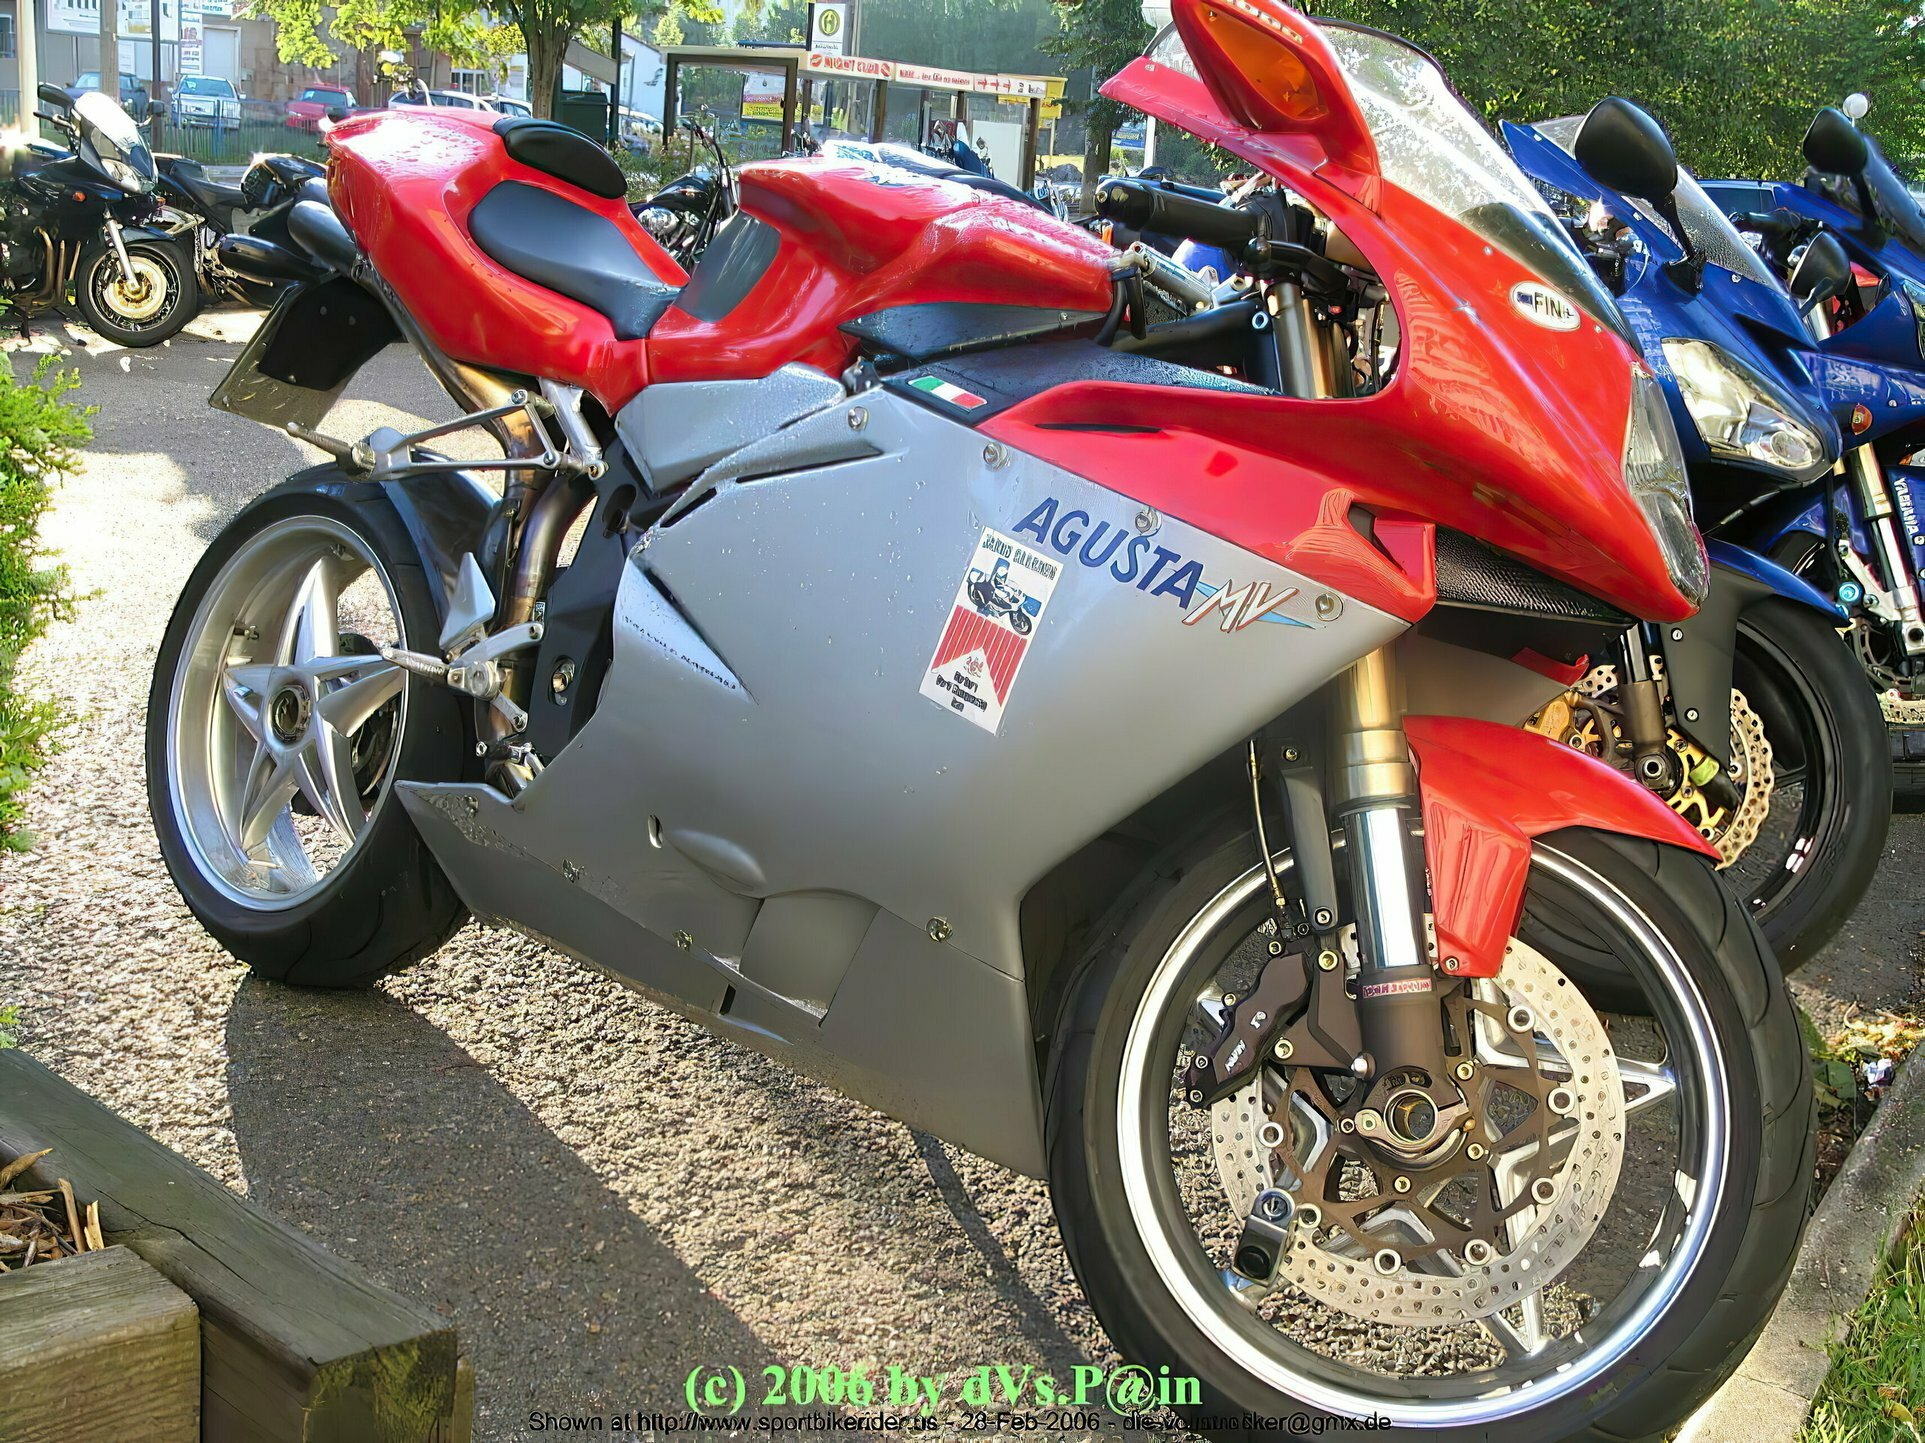 MV Agusta (all models) - ID: 97409